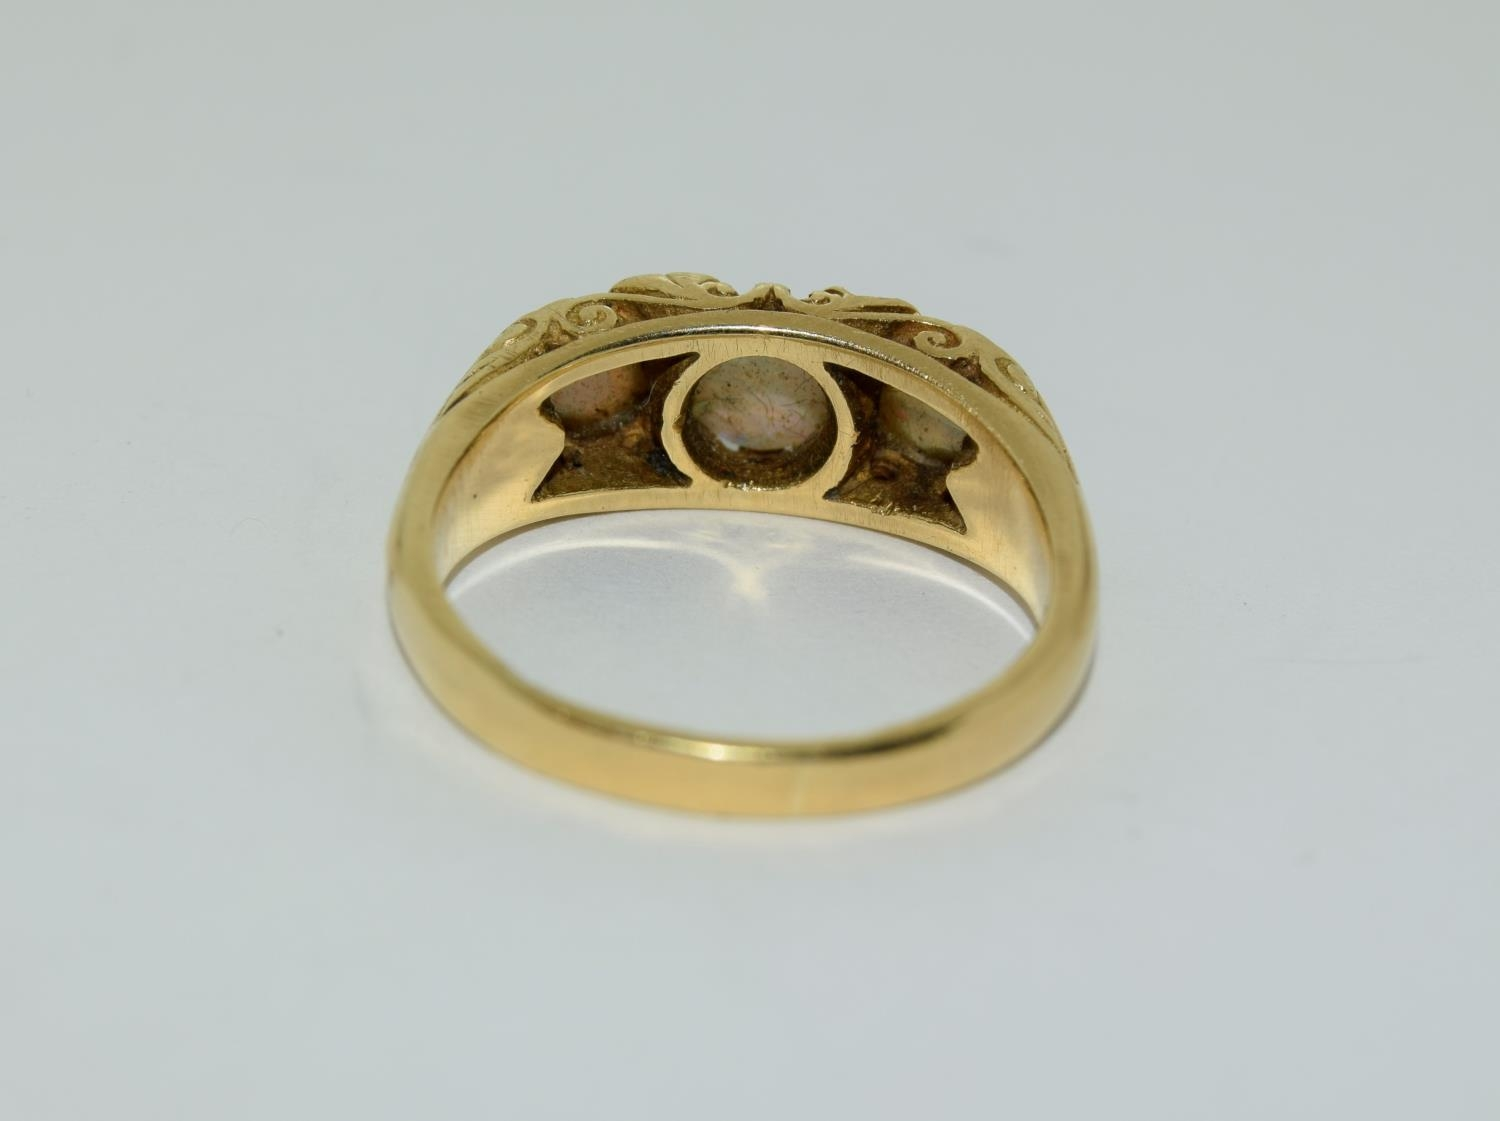 Opal/Diamond 3 stone 18ct gold heavy 6.6g ring, Size P. - Image 3 of 6